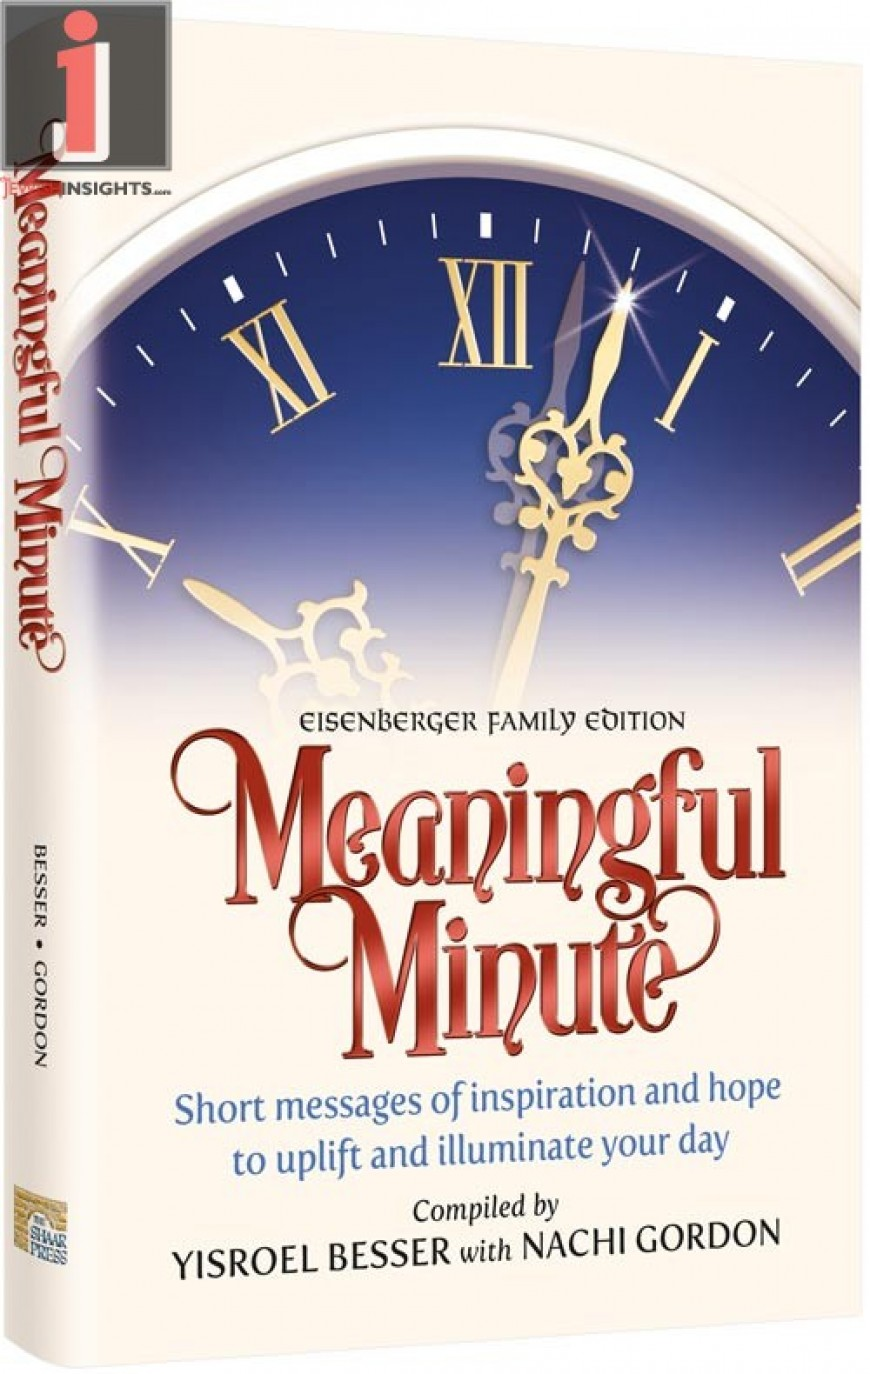 Meaningful Minute: Short messages of inspiration and hope to uplift and illuminate your day